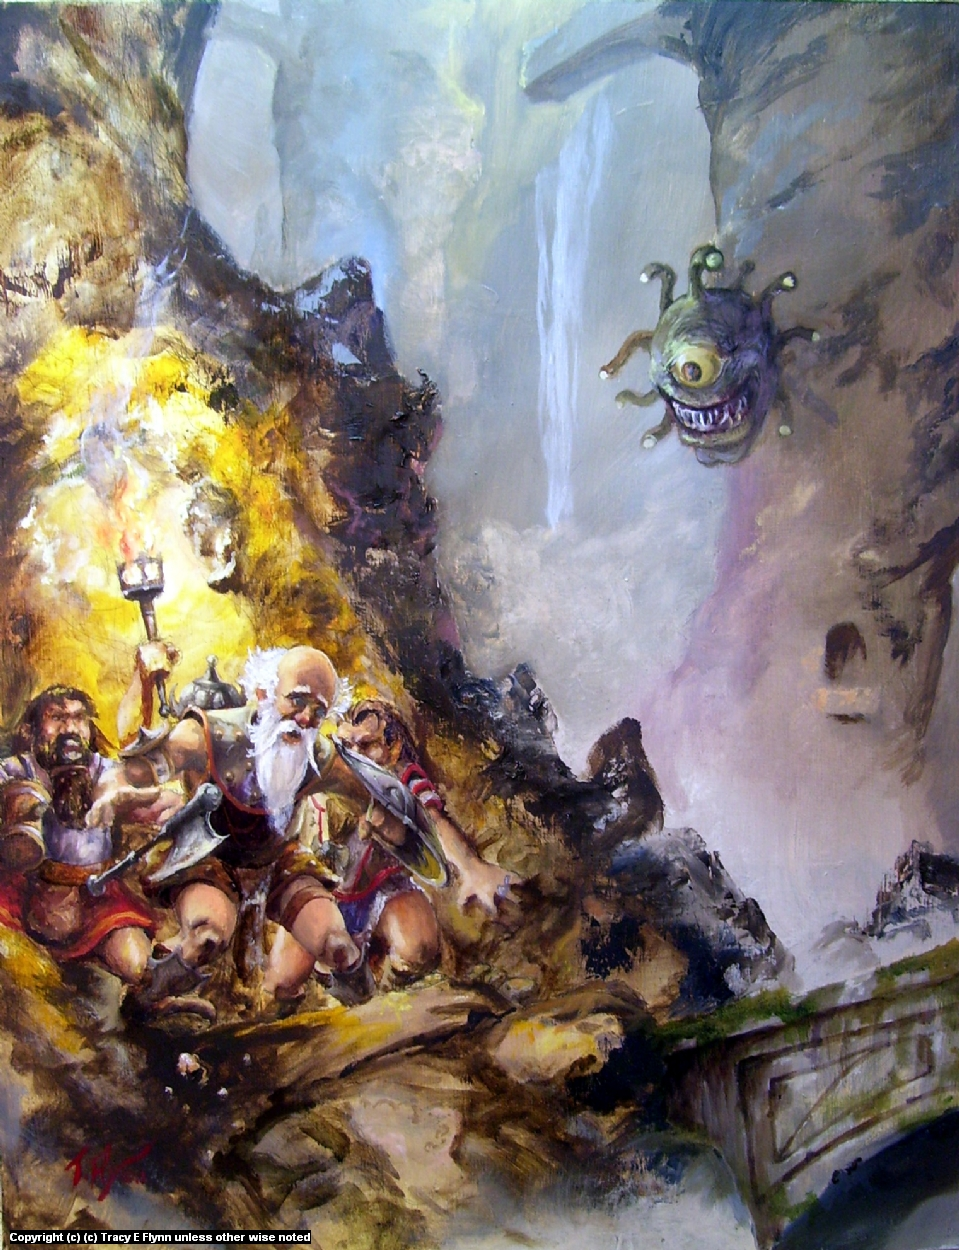 DWARFS IN THE CAVERN OF DOOM Artwork by Tracy E Flynn